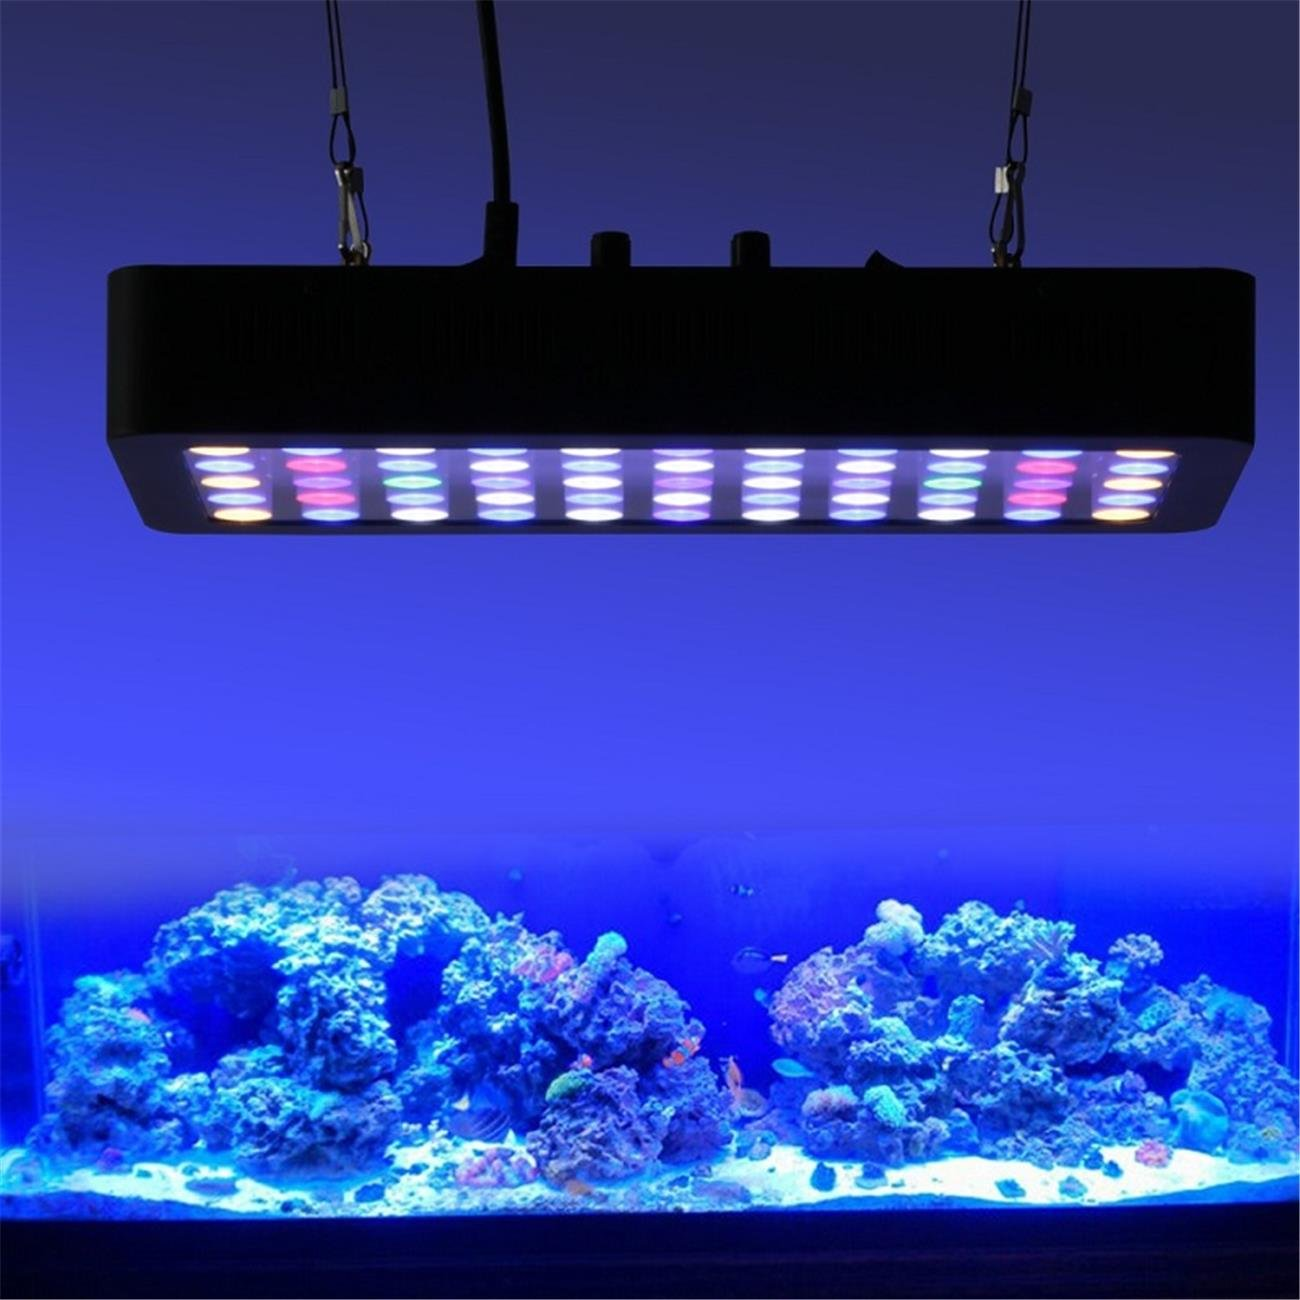 Amazon.com  BEAMNOVA Dimmable 180W LED Aquarium Light Lighting Full Spectrum For Fish Freshwater and Saltwater Coral Tank Blue and White LPS/SPS  Pet ...  sc 1 st  Amazon.com & Amazon.com : BEAMNOVA Dimmable 180W LED Aquarium Light Lighting ... azcodes.com